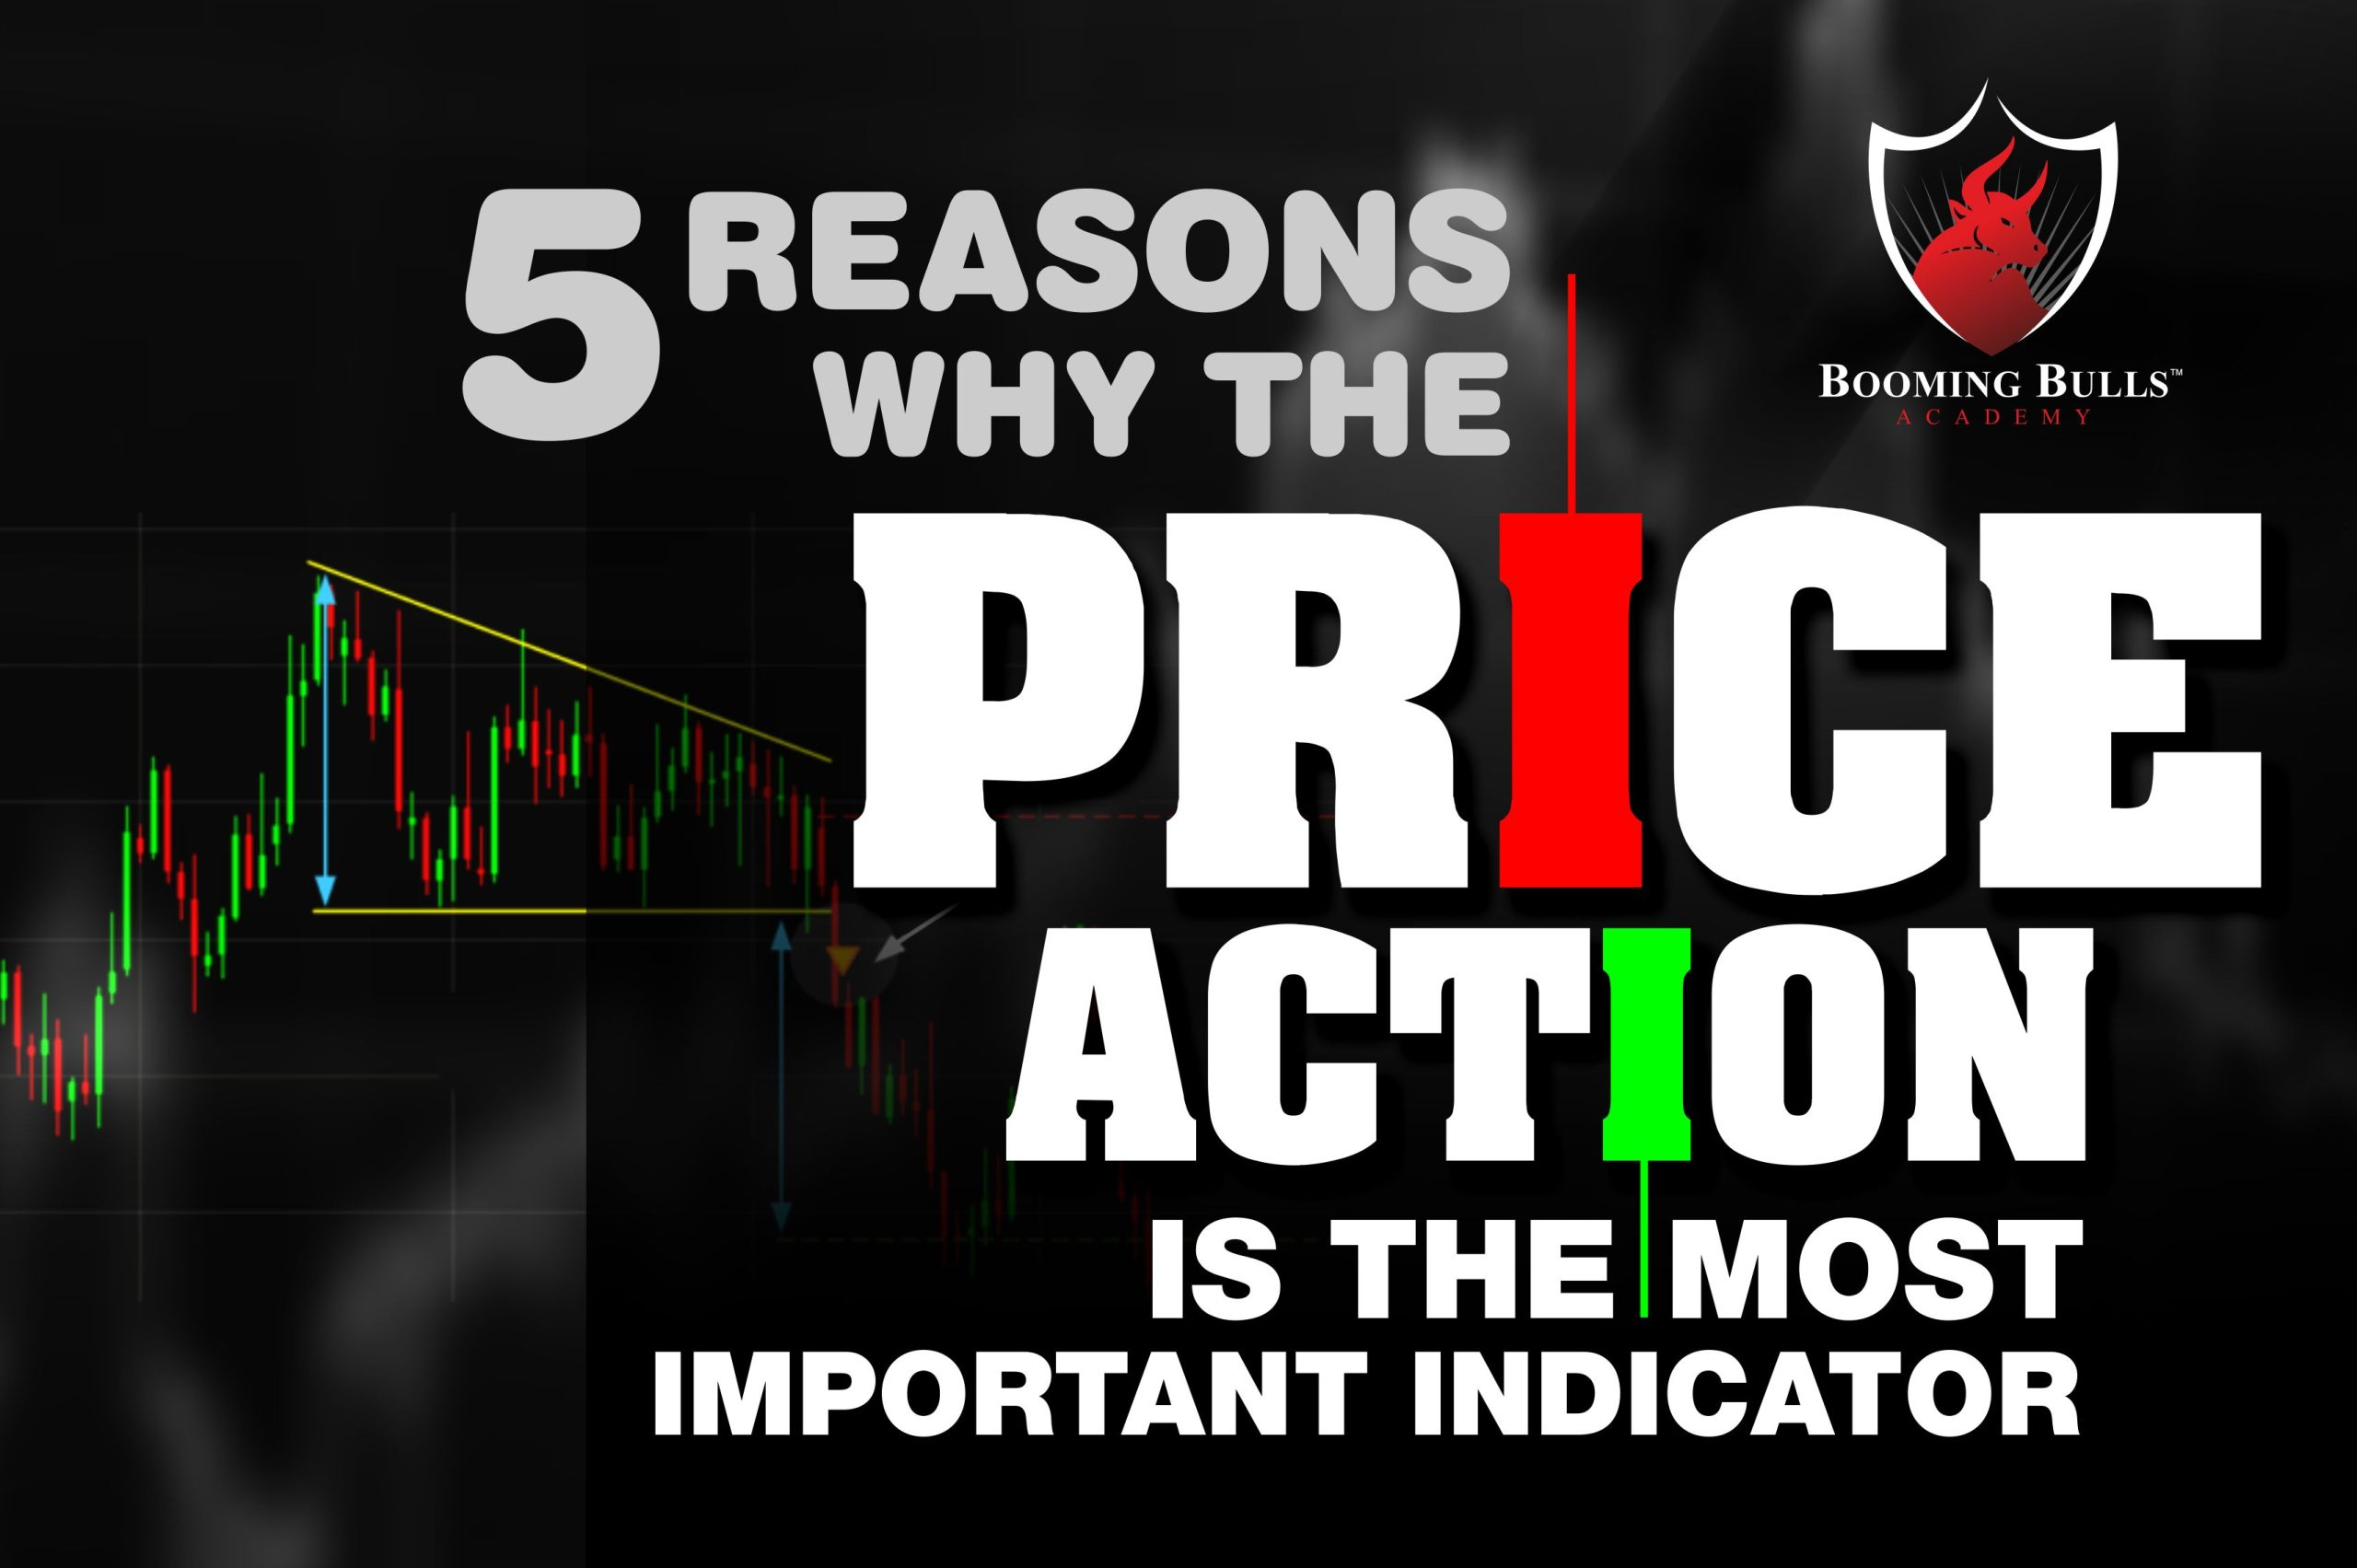 5 Reasons Why The Price Action Is The Most Important Indicator